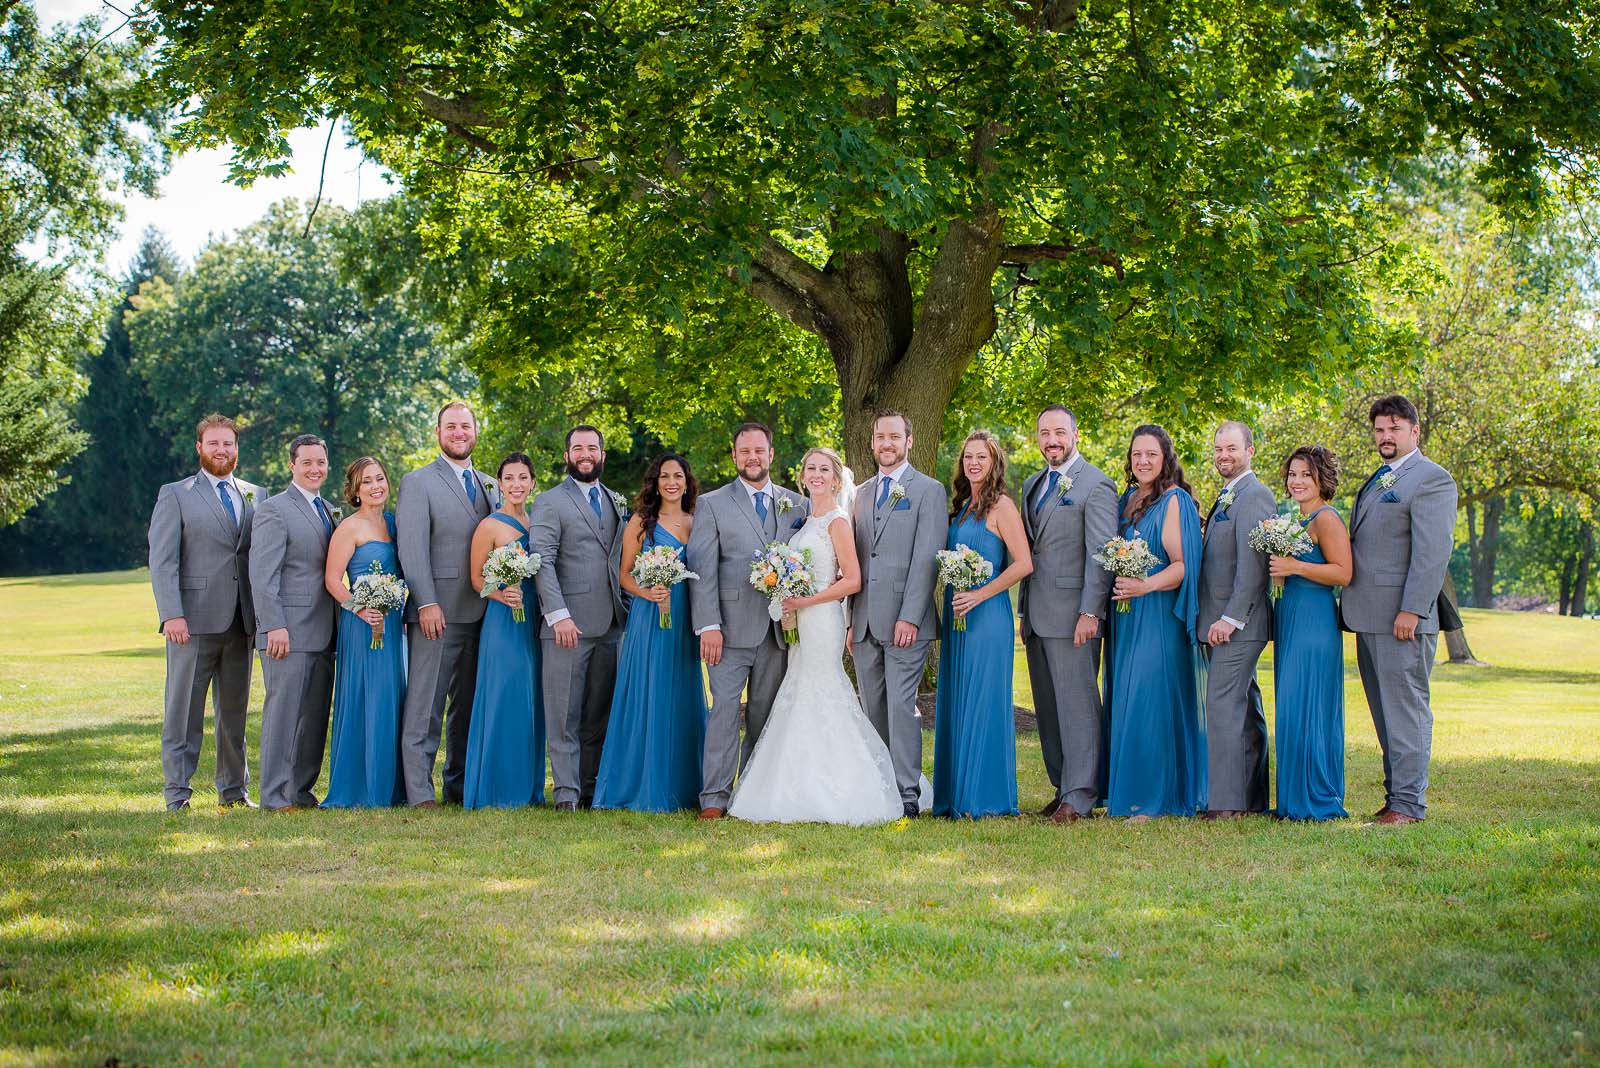 Eric_and_Christy_Photography_Blog_Wedding_Kelly_Matt-31